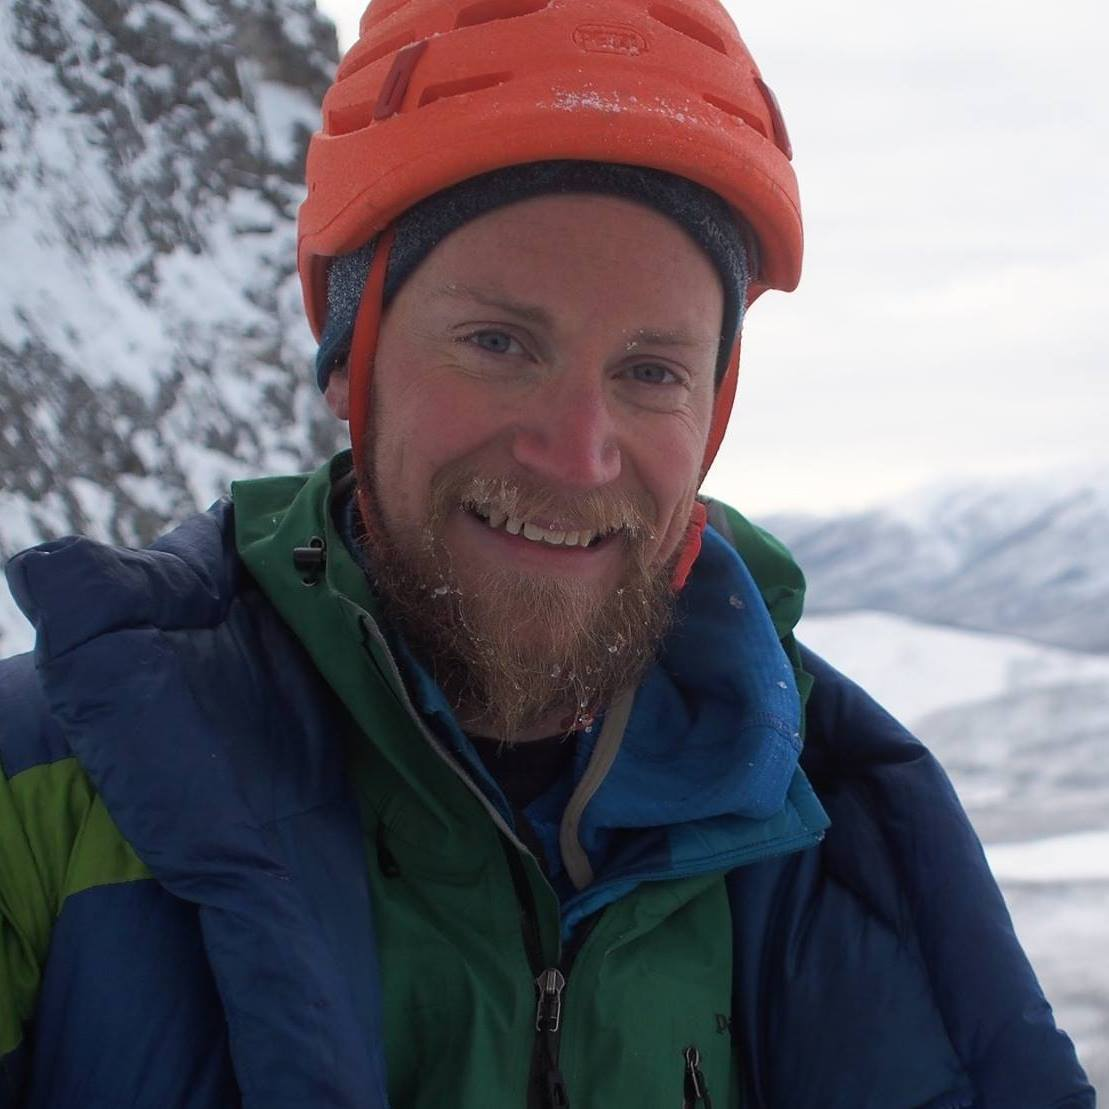 CLUB ADVISOR - Nick Janssen    Nick is an advisor of the Alaska Alpine Club and has been involved with the club since 2012. He has climbed most of the peaks in the Delta Range and enjoys nordic skiing and ice climbing during the winter; packrafting and distance trail running during the summer.